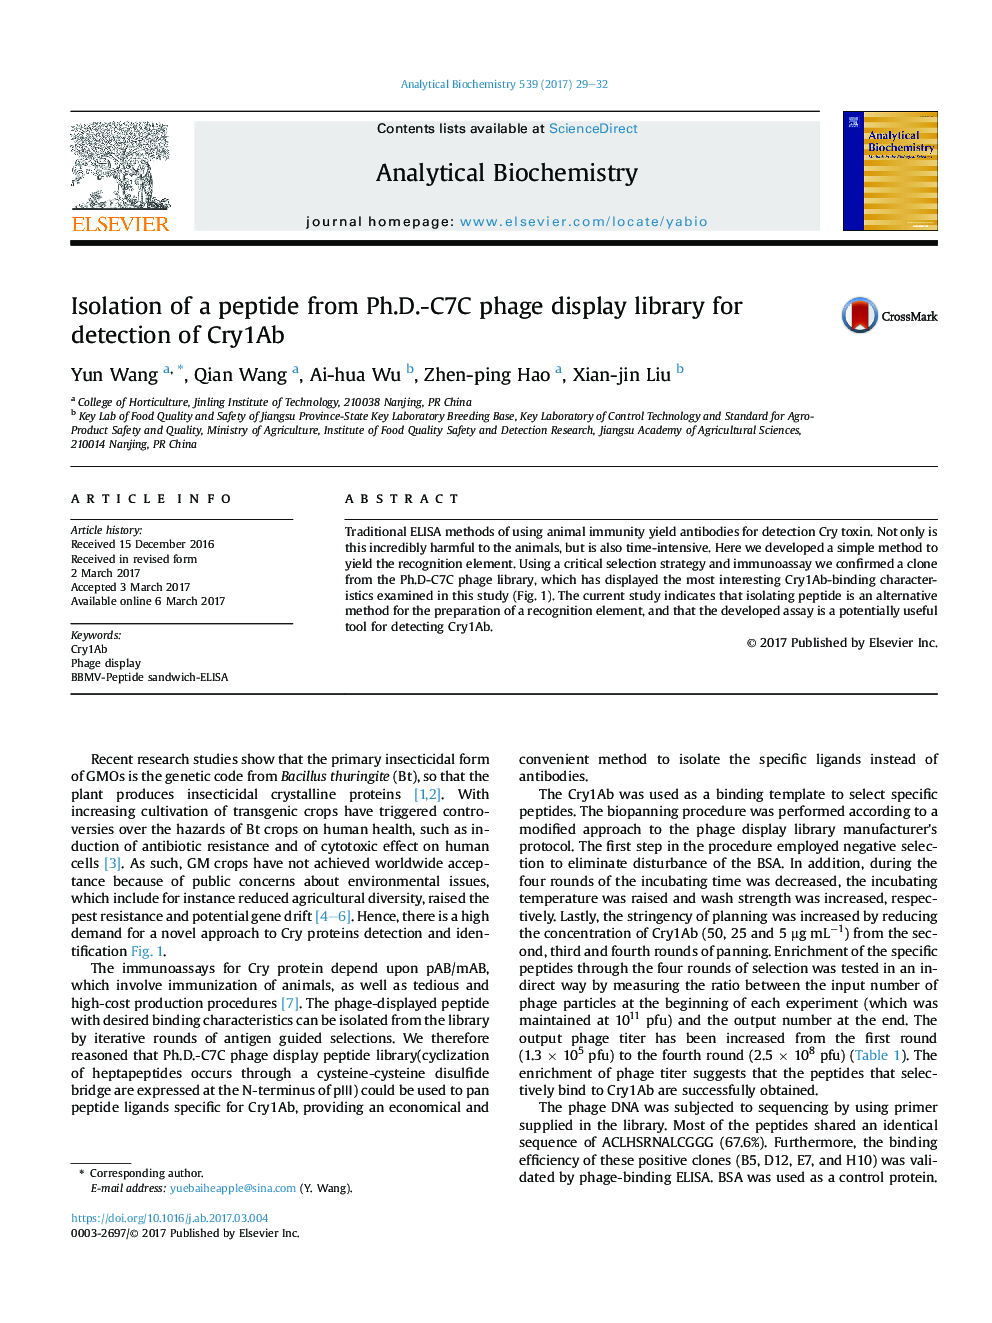 Isolation of a peptide from Ph.D.-C7C phage display library for detection of Cry1Ab